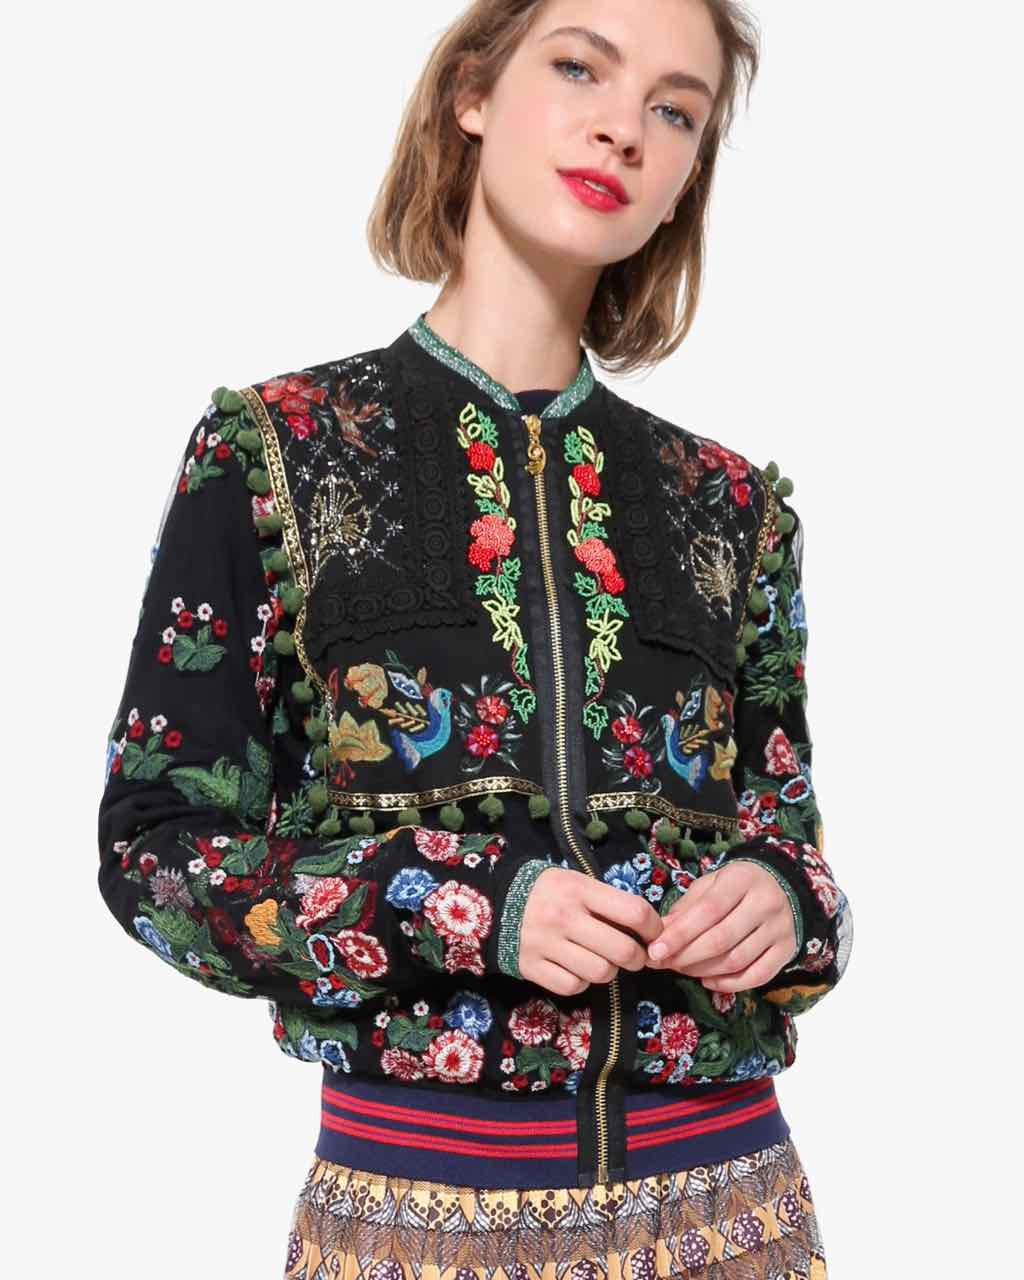 Desigual Light Jacket with Floral Embroidery